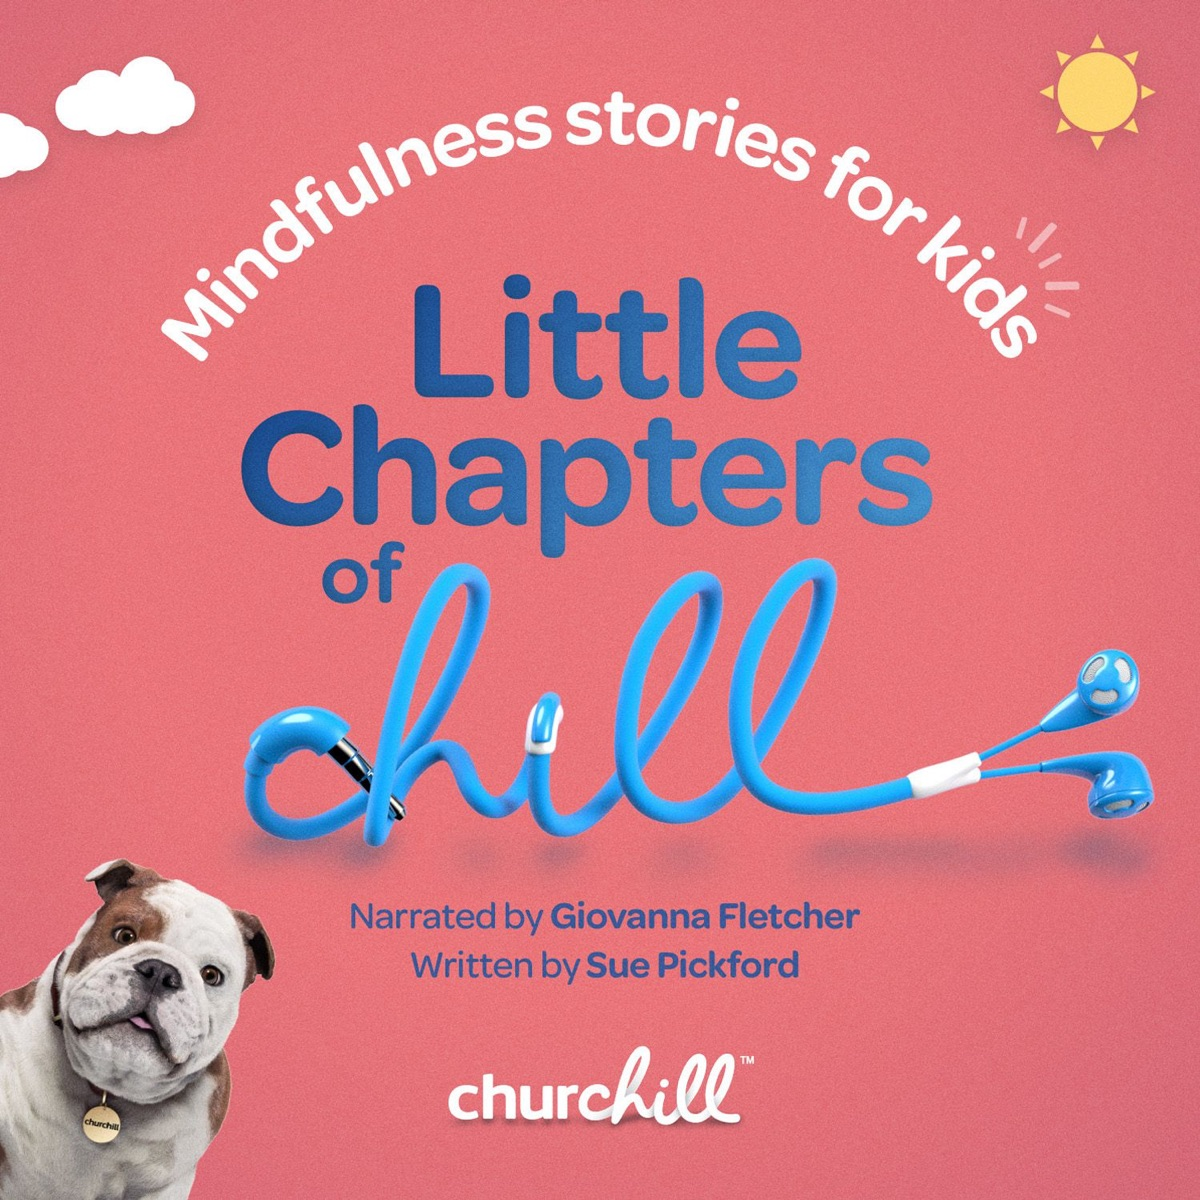 Little Chapters of Chill